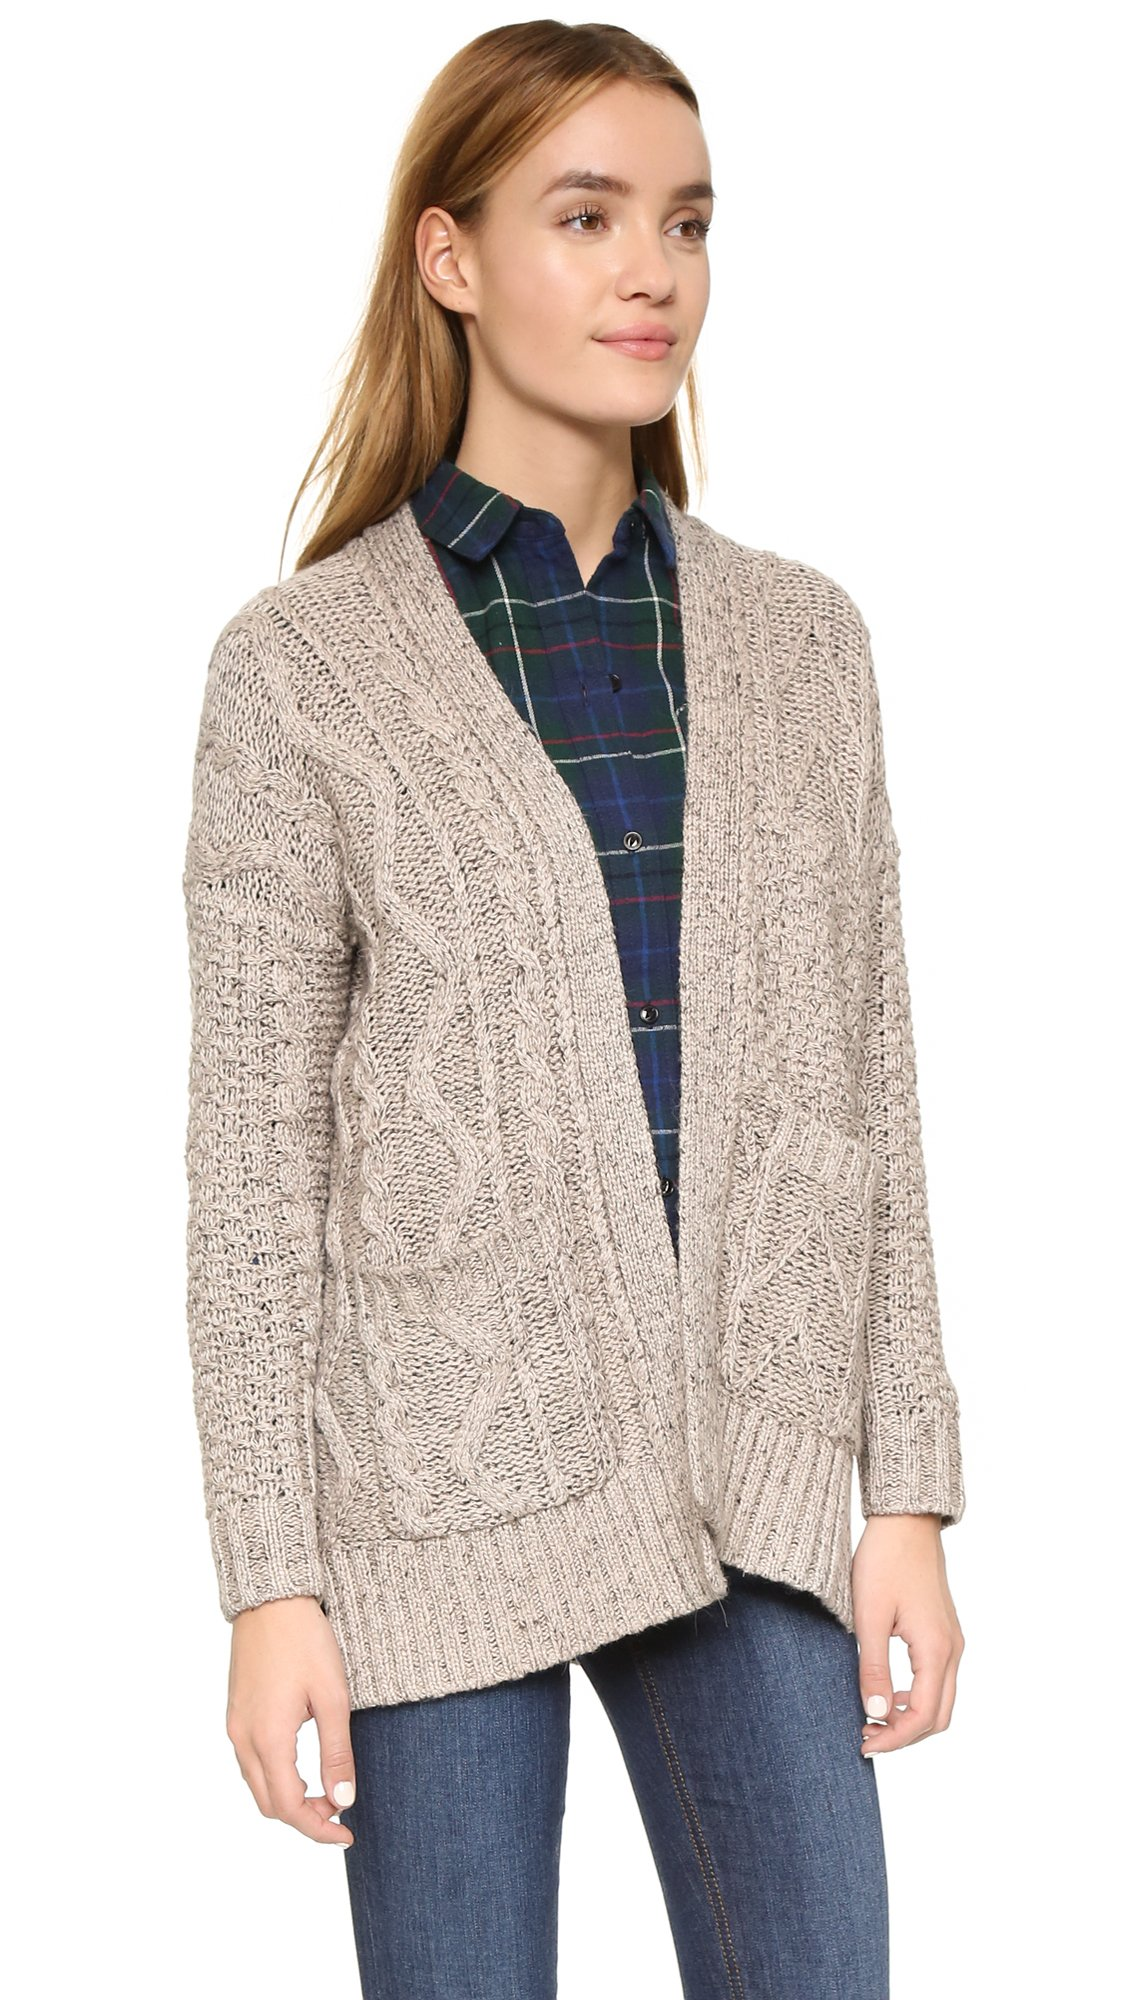 Madewell Marled Patchwork Cable Cardigan in Gray | Lyst